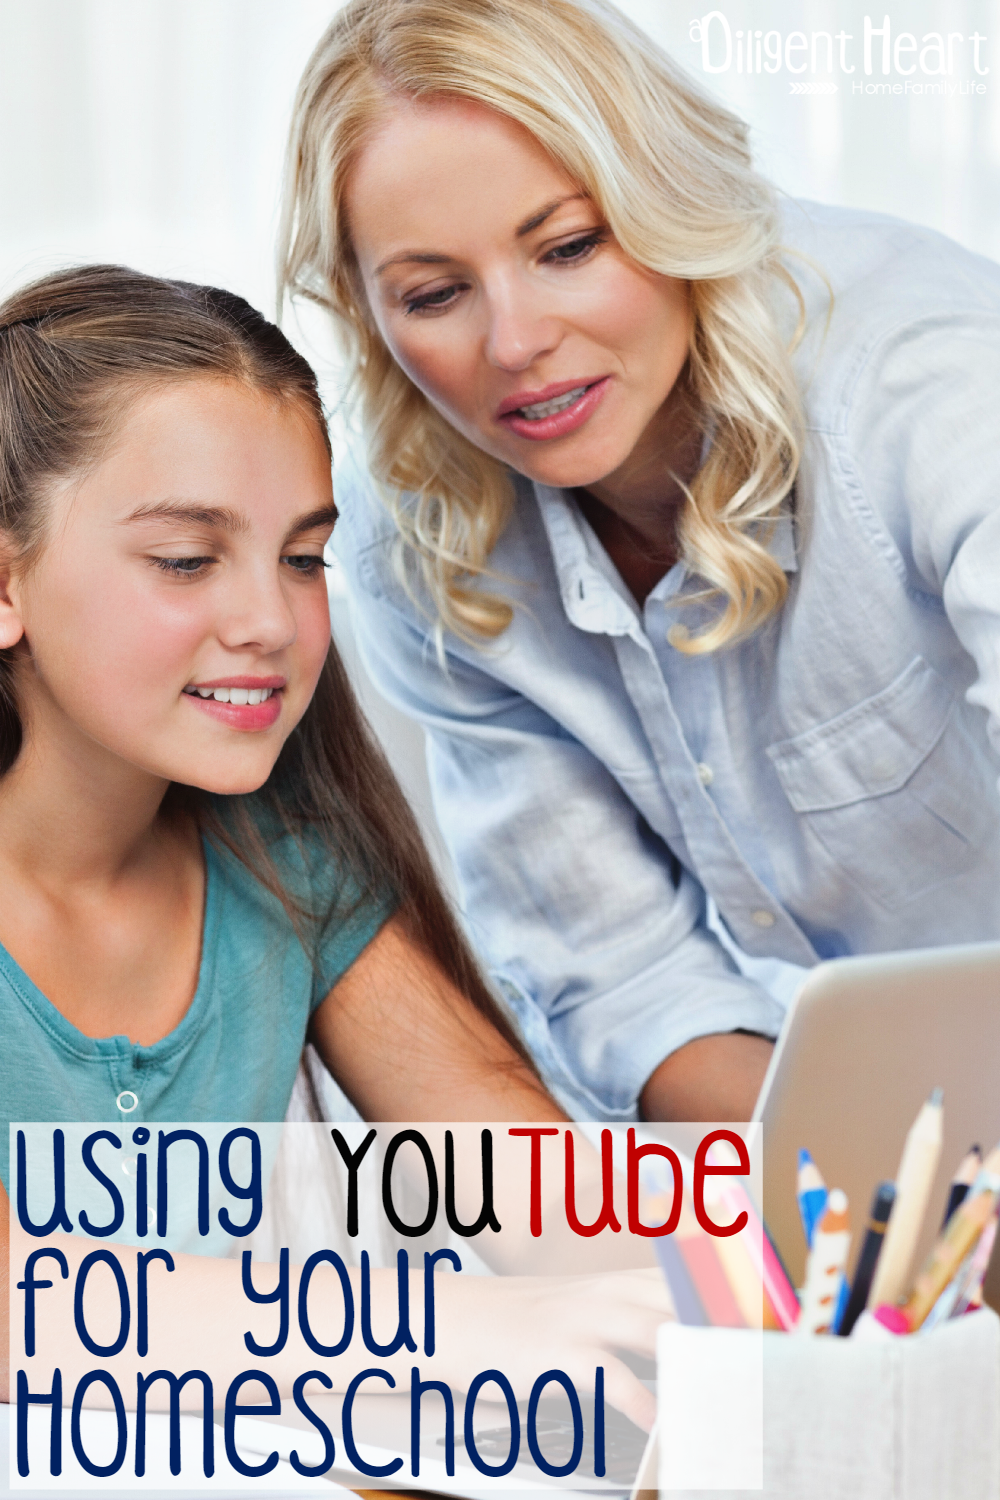 Are you usually on the look-out for creative and fun ways to enrich your children's learning experience? I know I am!. One of the best perks of homeschooling is that we don't have to stick to just the traditional textbook learning experience. In this post. I share some tips and a few resources to Using YouTube for your Homeschool. Using YouTube for Your Homeschool I adiligentheart.com